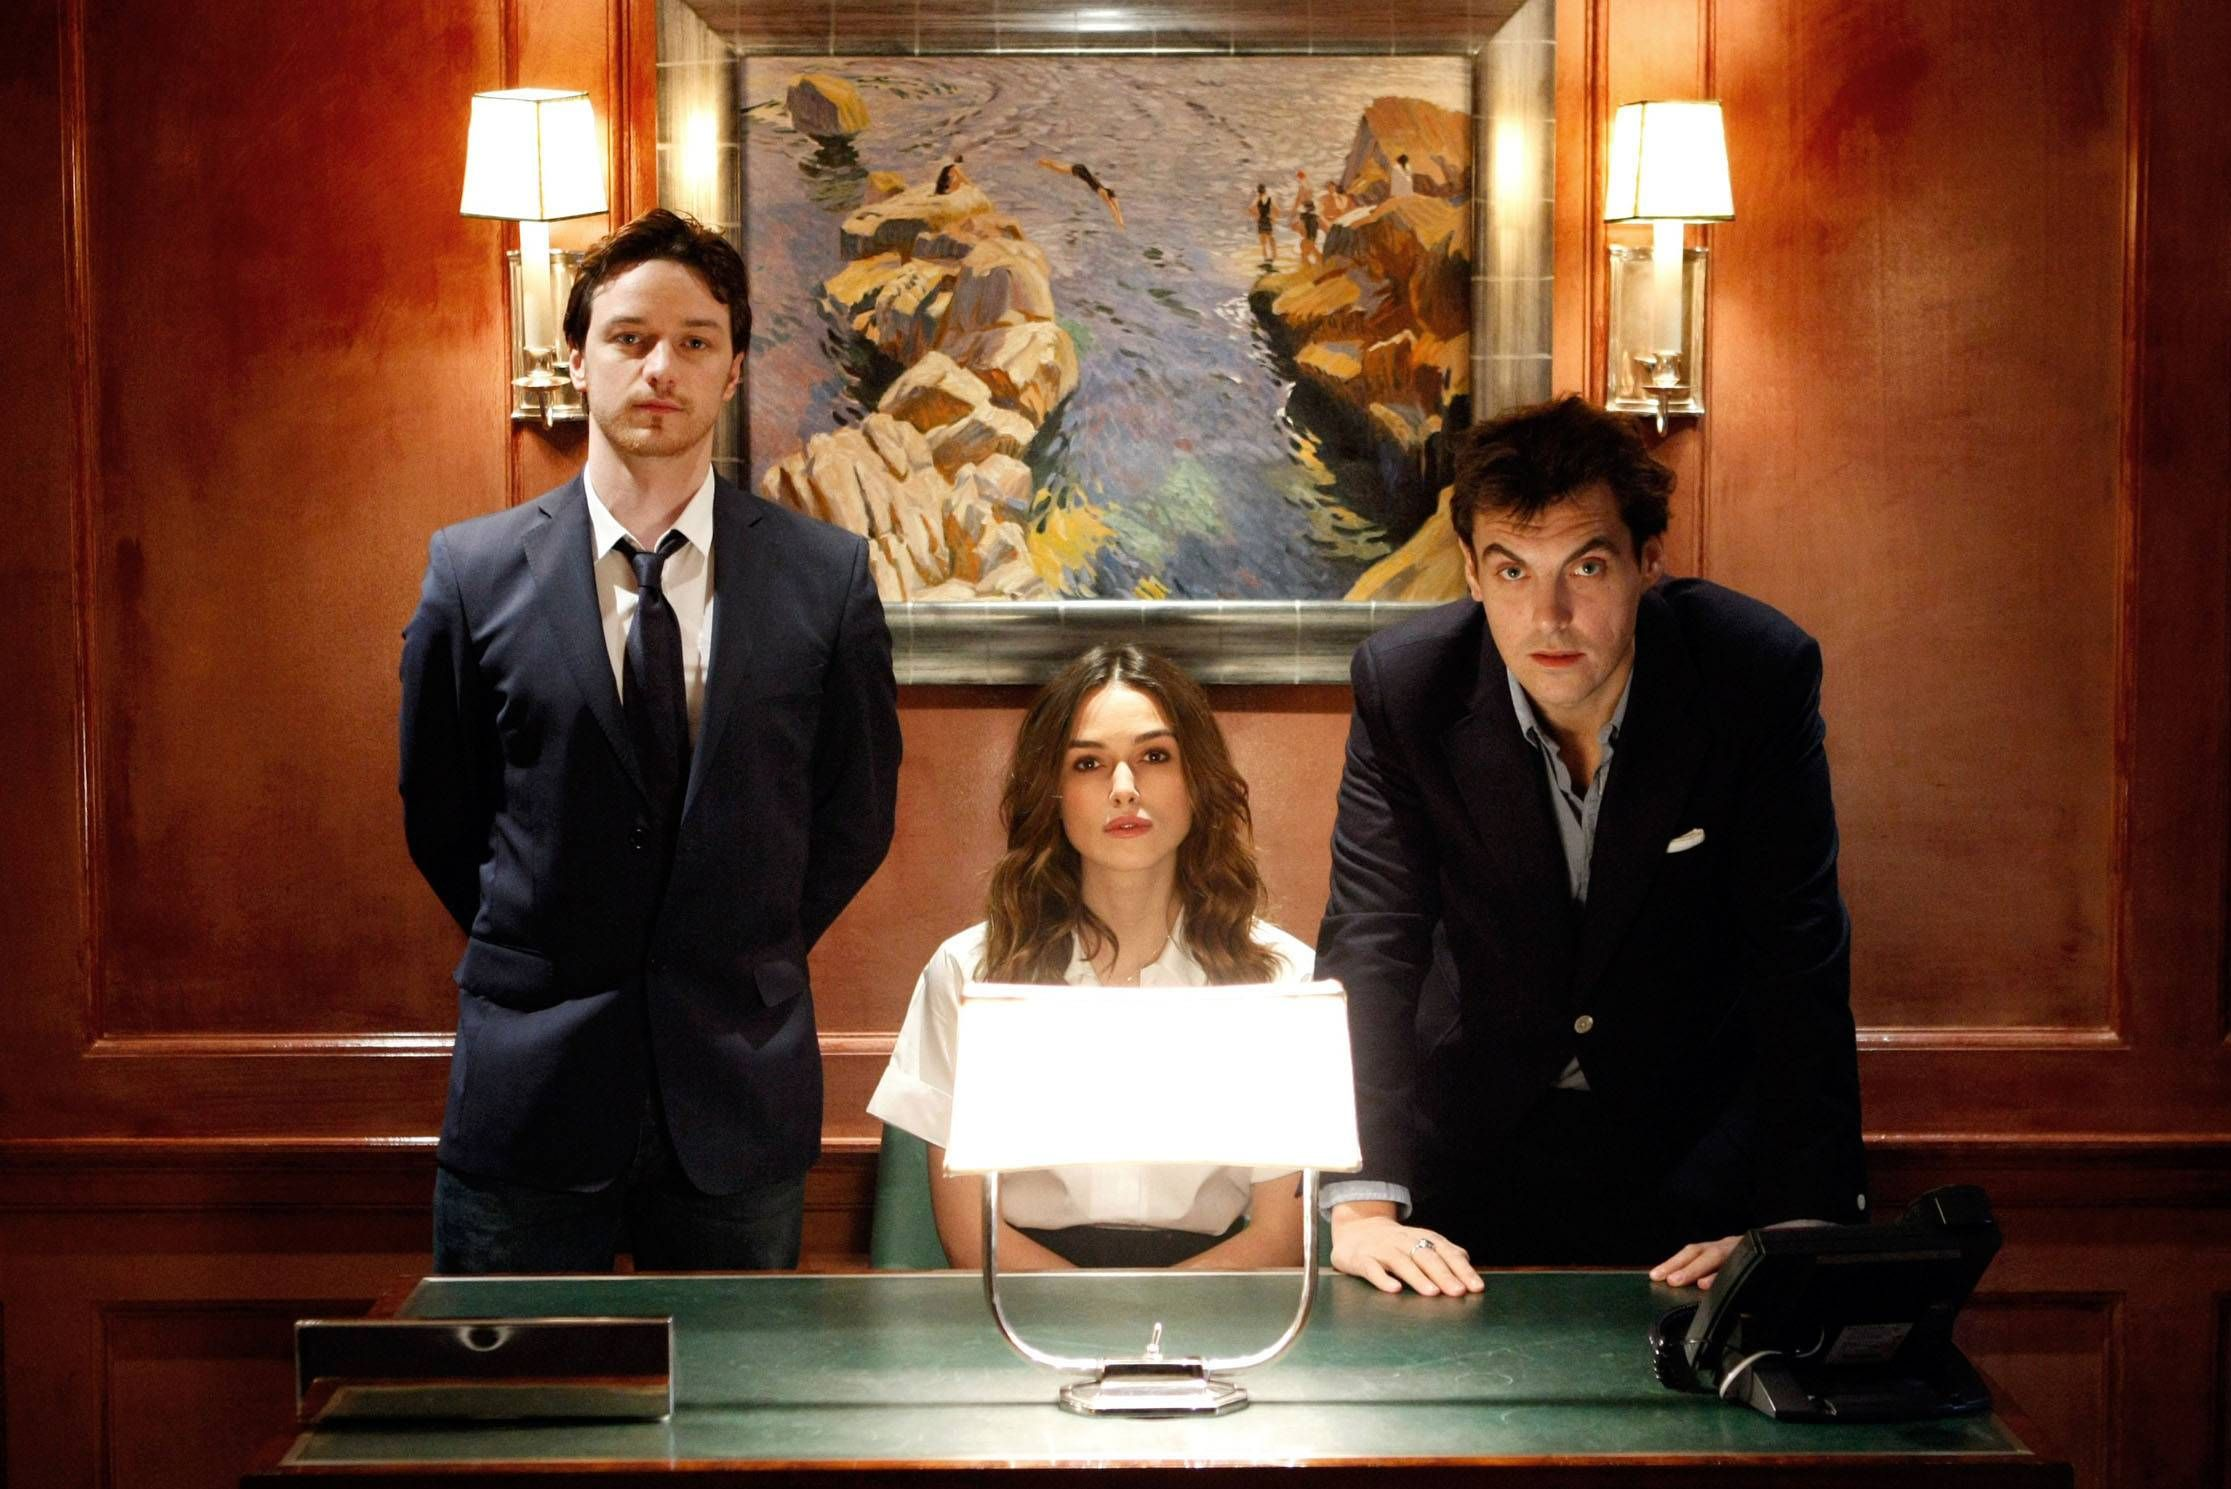 Keira Knightley with Joe Wright and James McAvoy